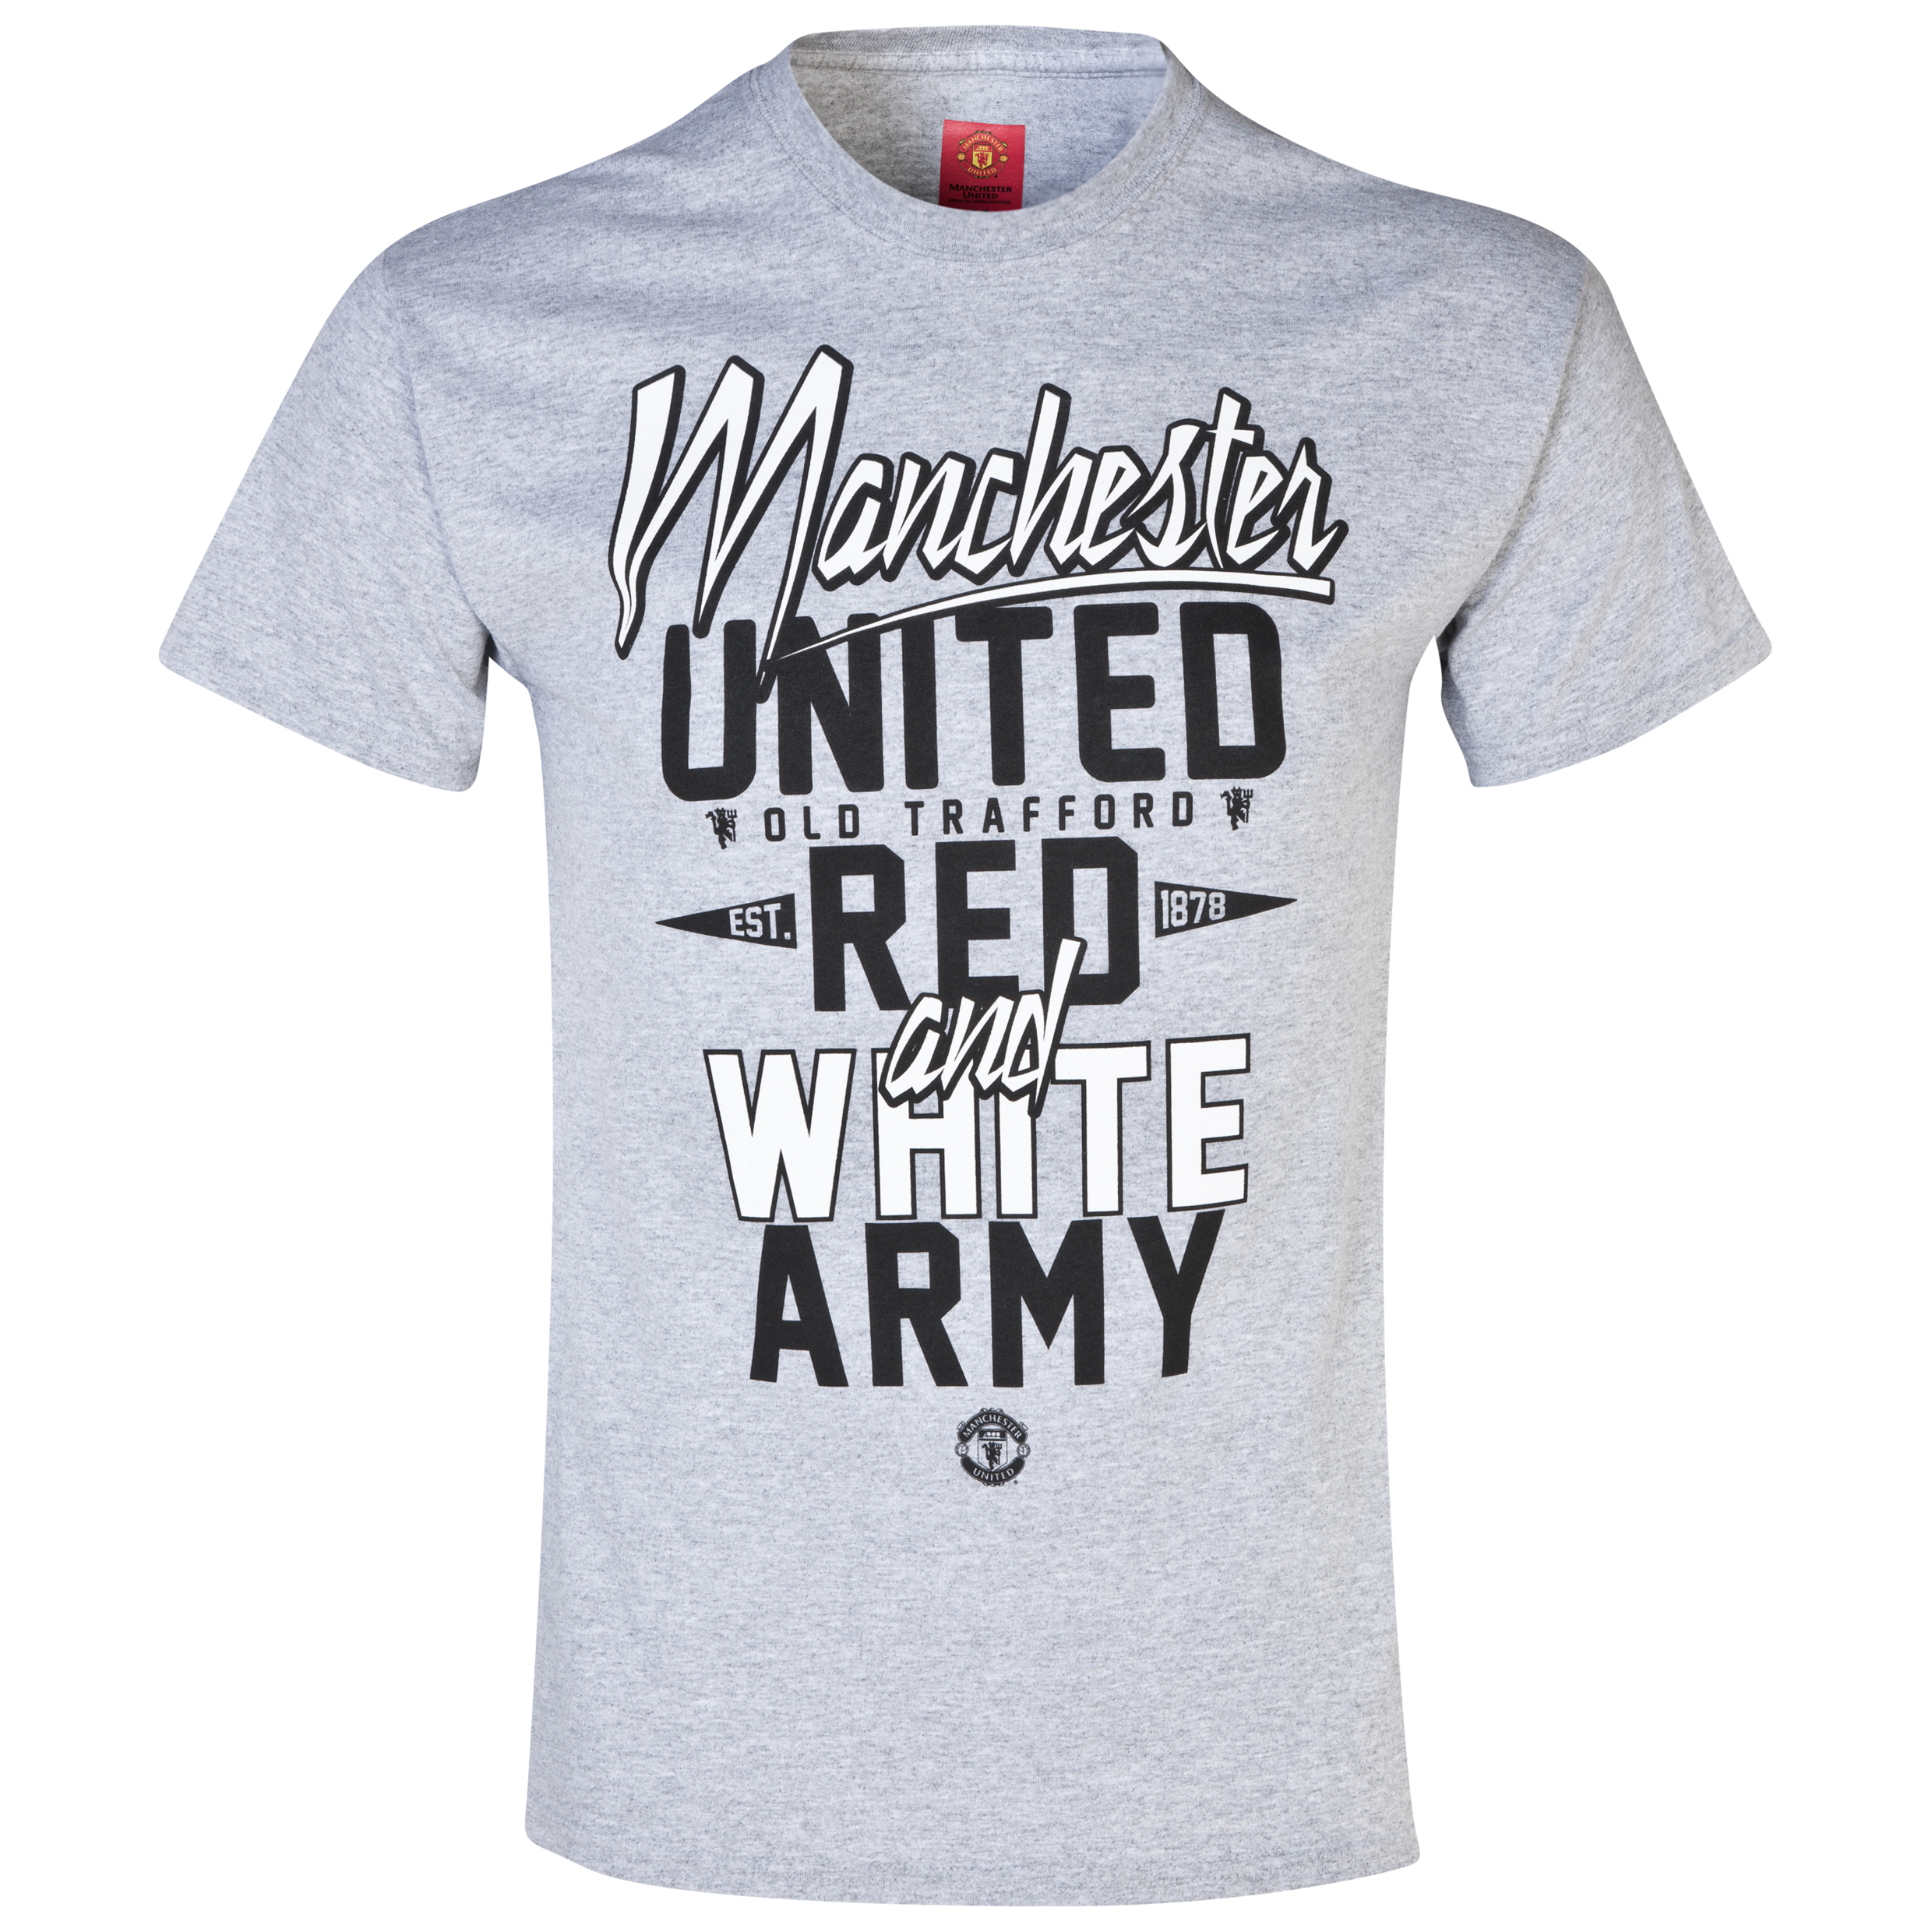 Manchester United Red and White Army T-Shirt -  Mens Grey